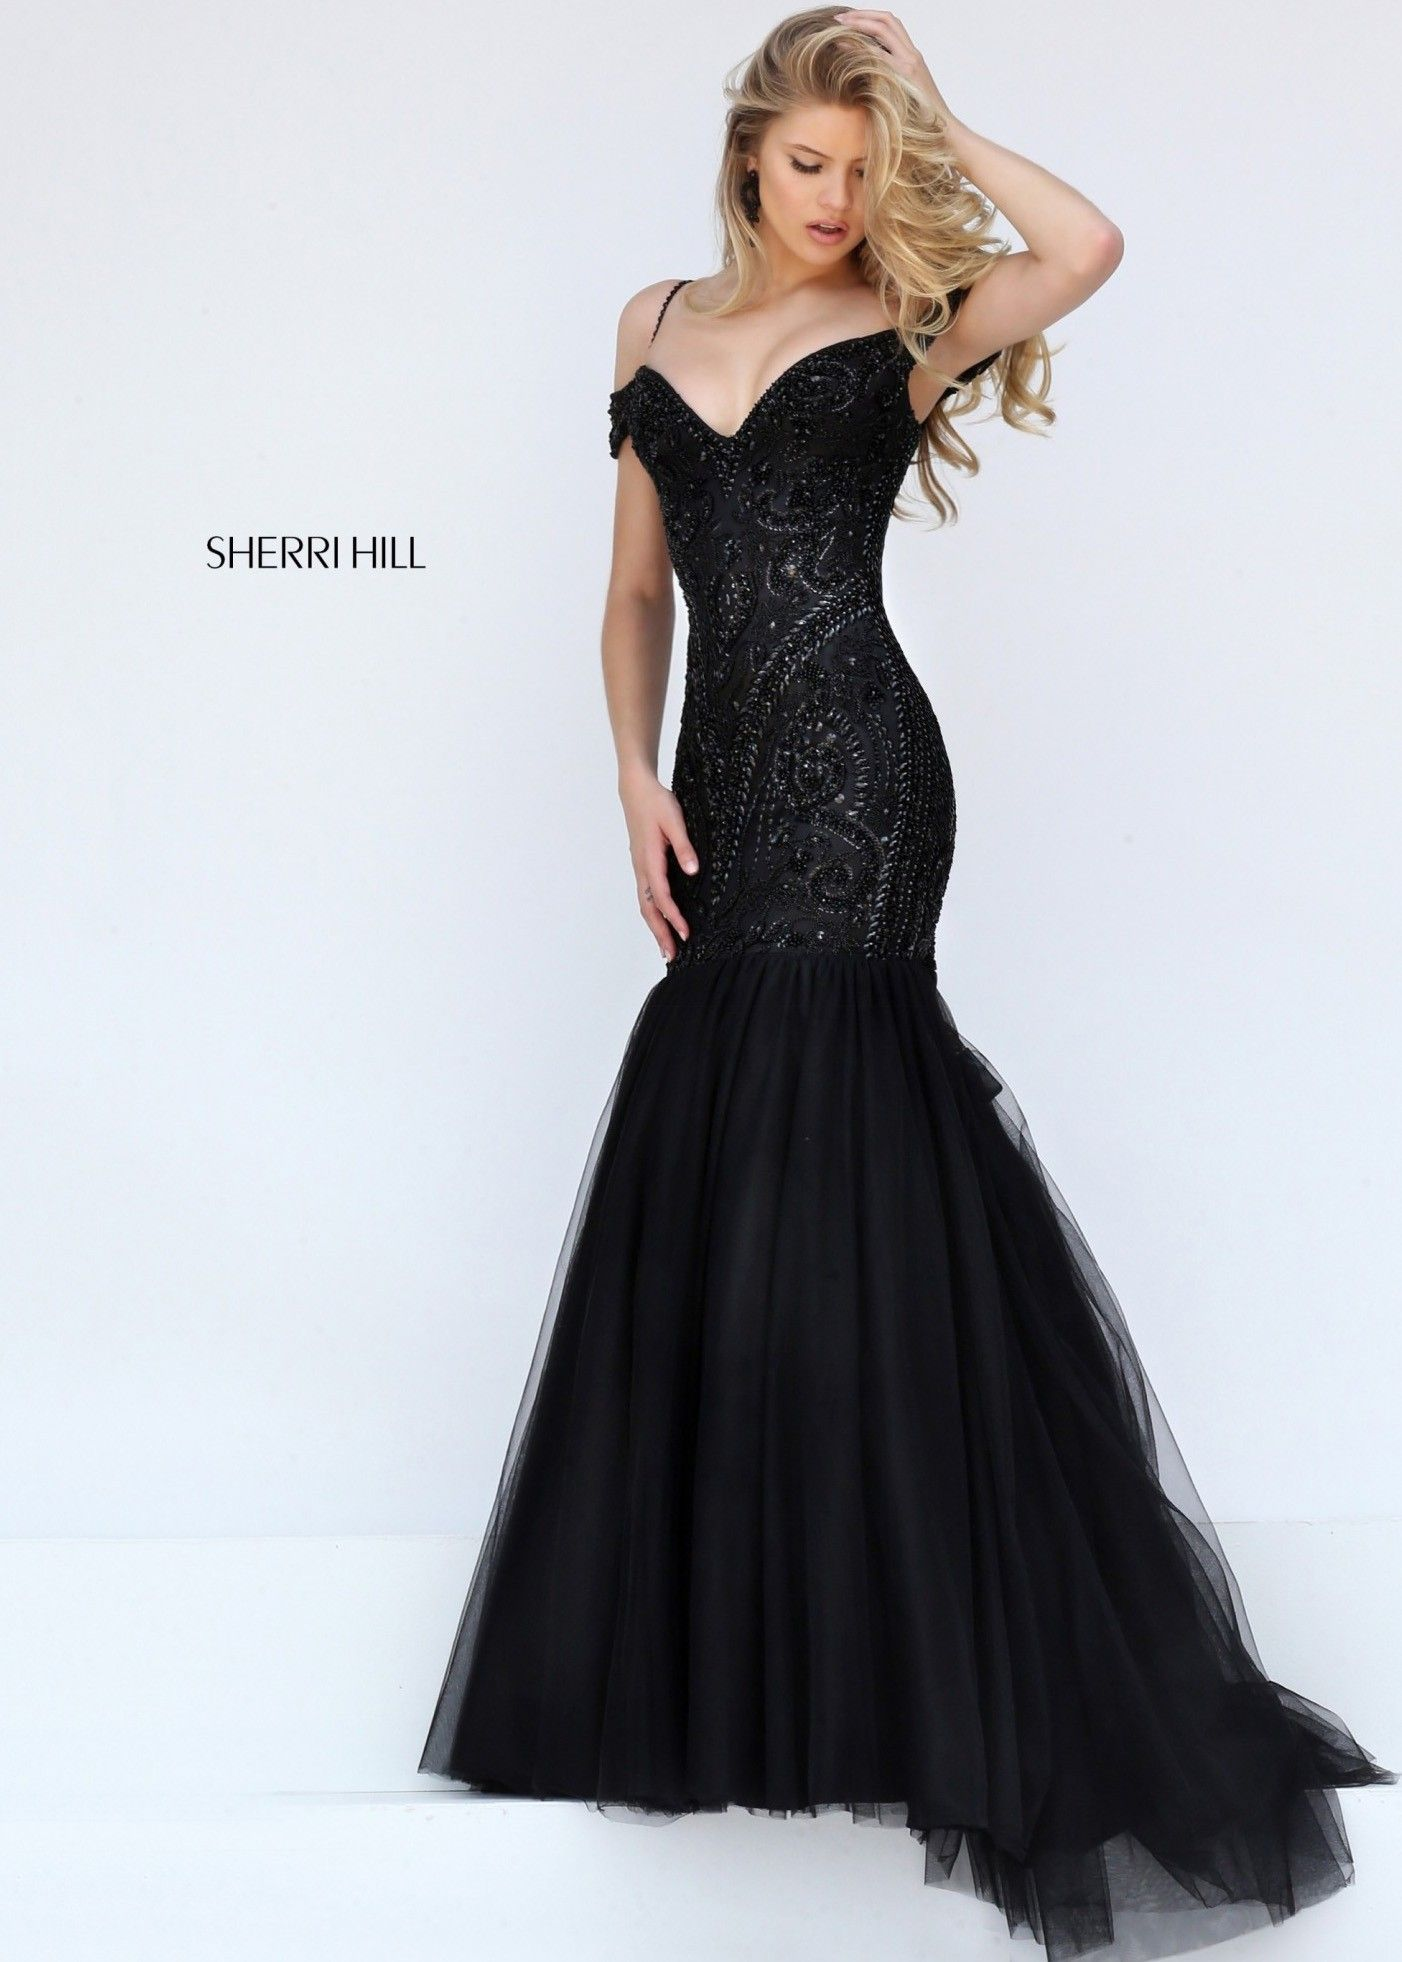 Sherri Hill 50212 Captivating Trumpet Gown   Trumpets, Gowns and Prom